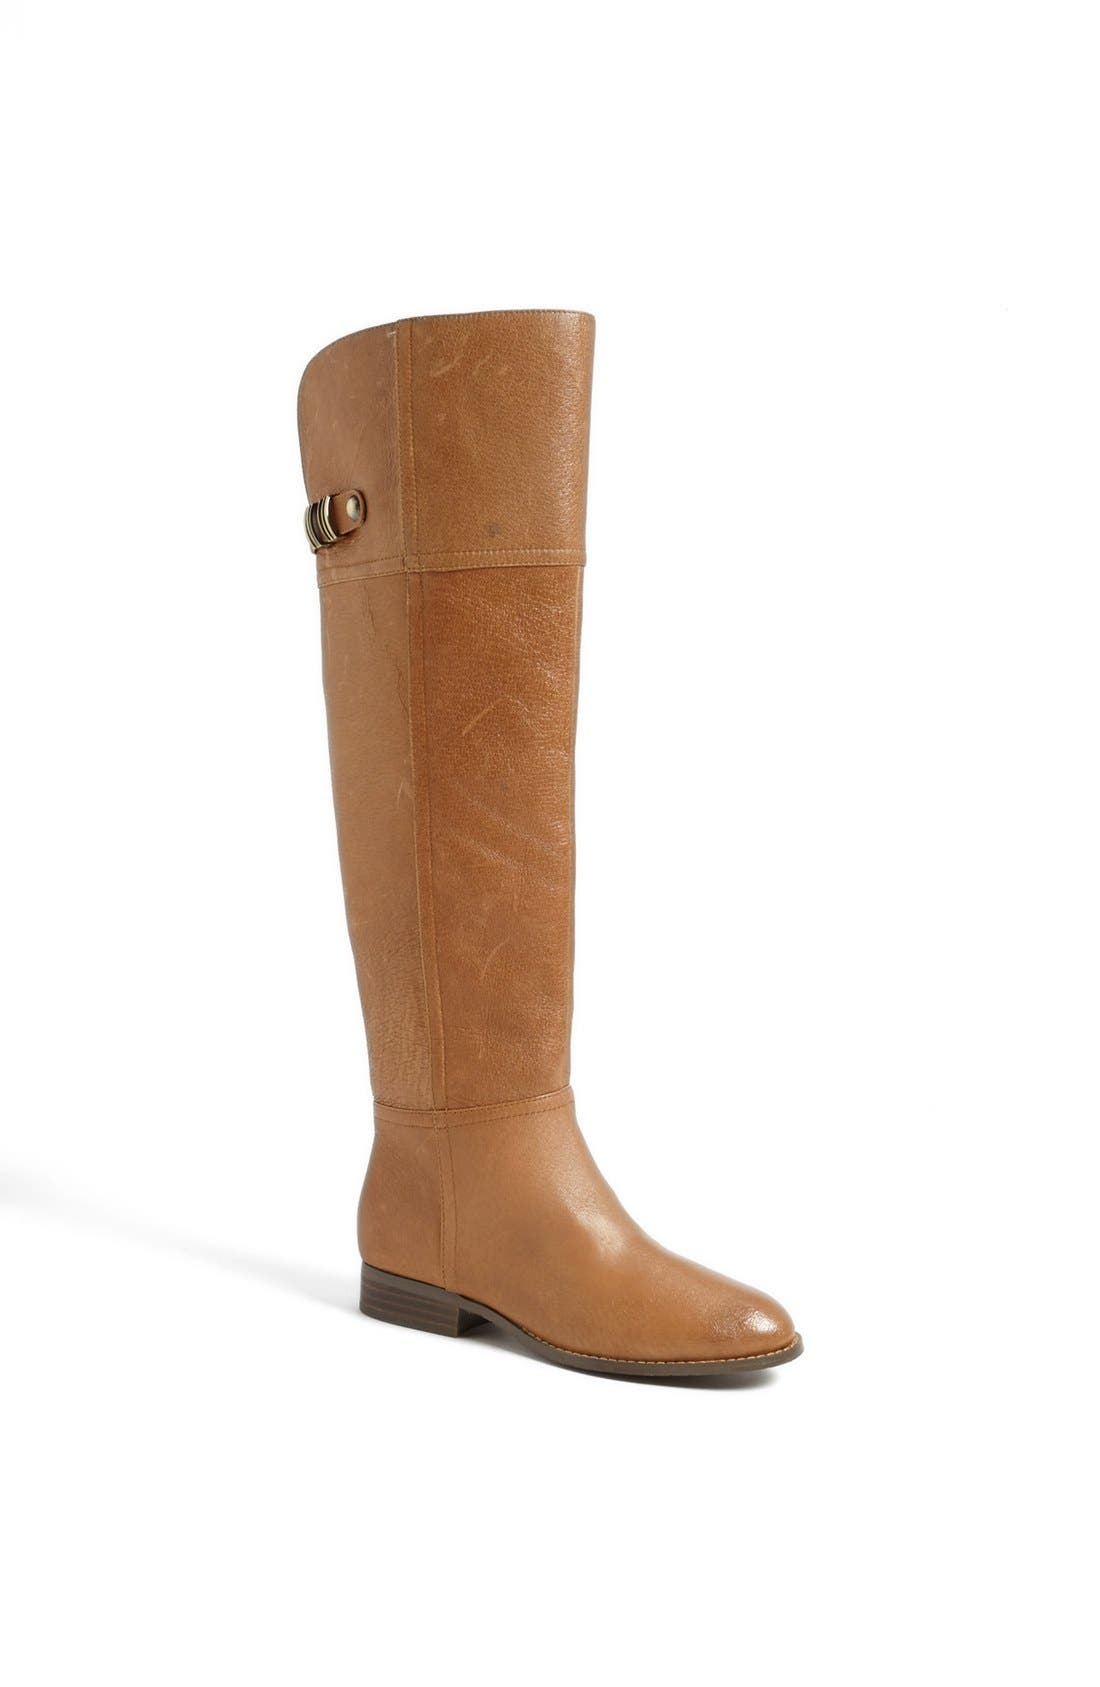 Main Image - Chinese Laundry 'Flash' Over the Knee Riding Boot